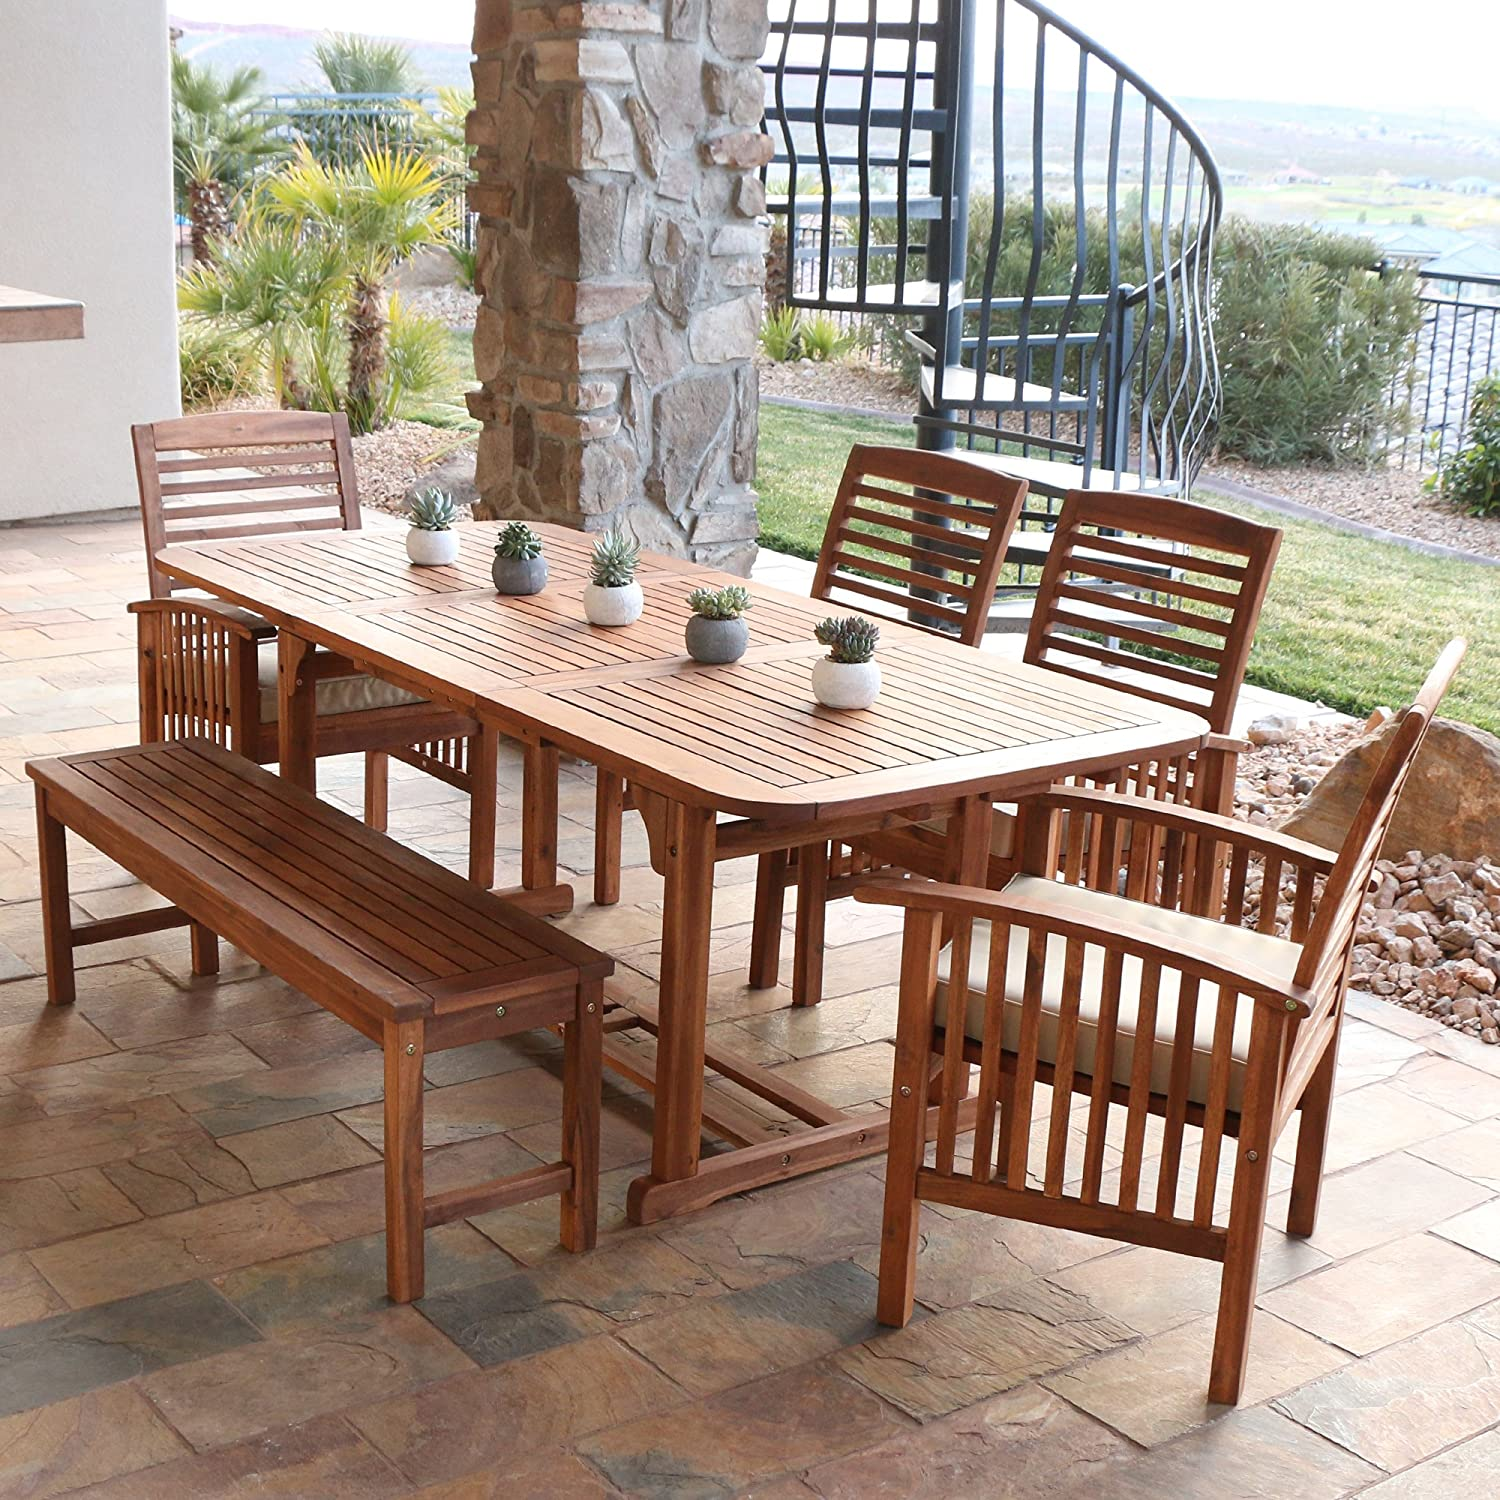 details hei prod d op furniture t outdoor table wid sears grand patio product jsp monterey dining resort sharpen l